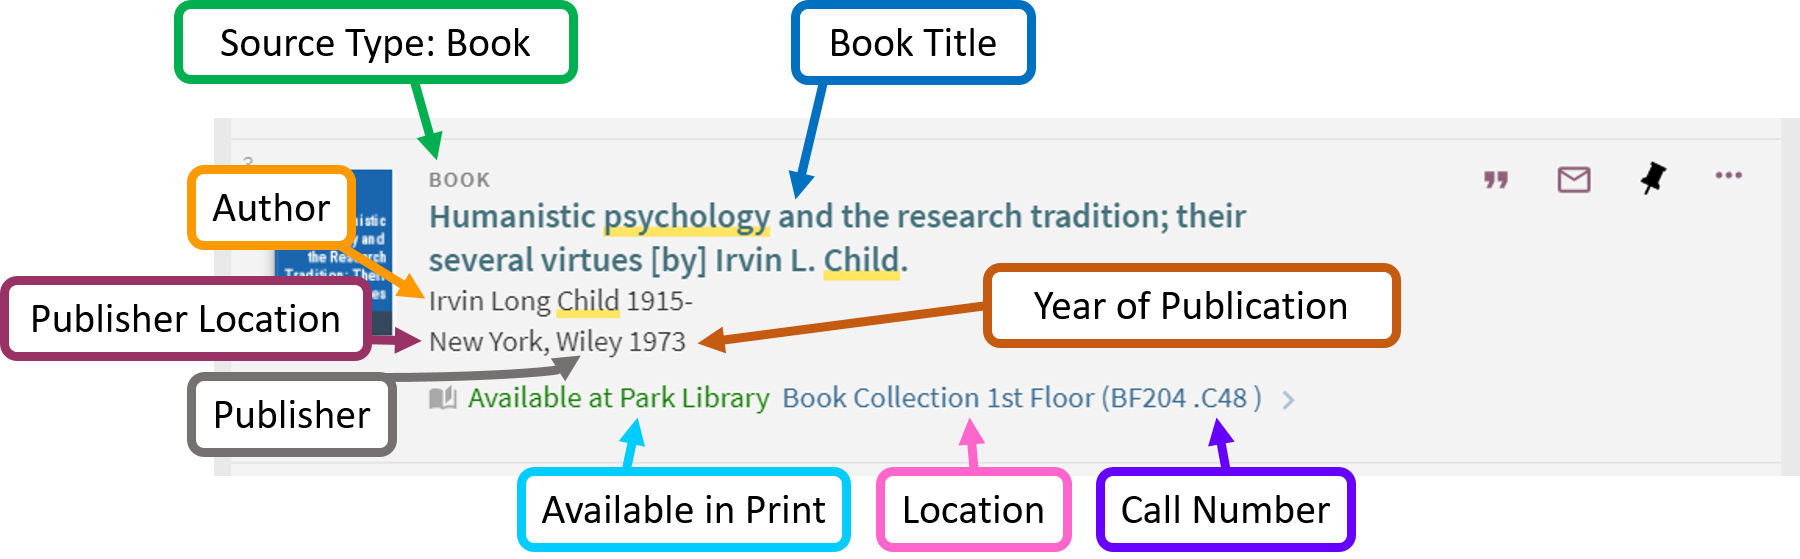 A screen grab of the a book from a Smart Search search results list. The first row indicates the source type, a book. The next row is the title of the book. Then the author is listed. Then the publiser's location, the name of the publisher, and the year of publication. At the bottom of the record is the availability information, which indicates where the book is available in the library, including the call number.